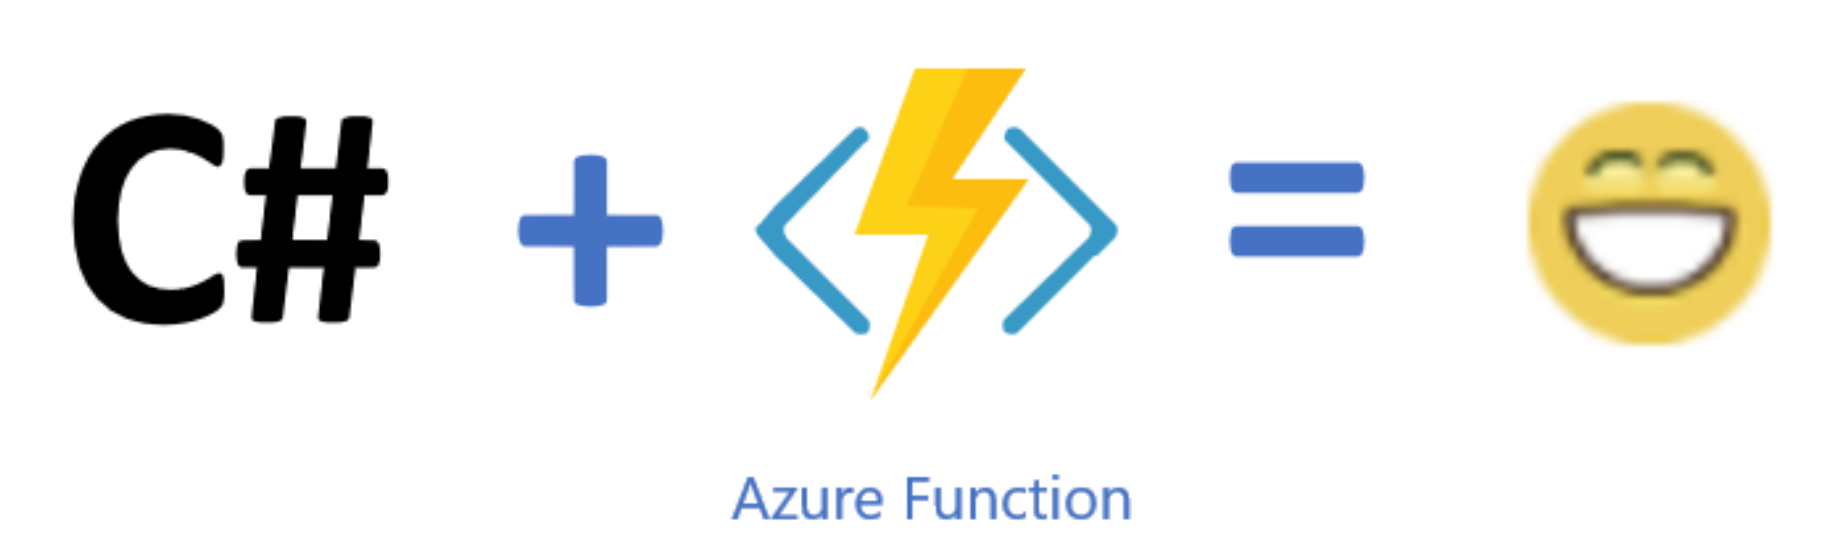 Azure Functions V2 Dependency Injection using  NET Core